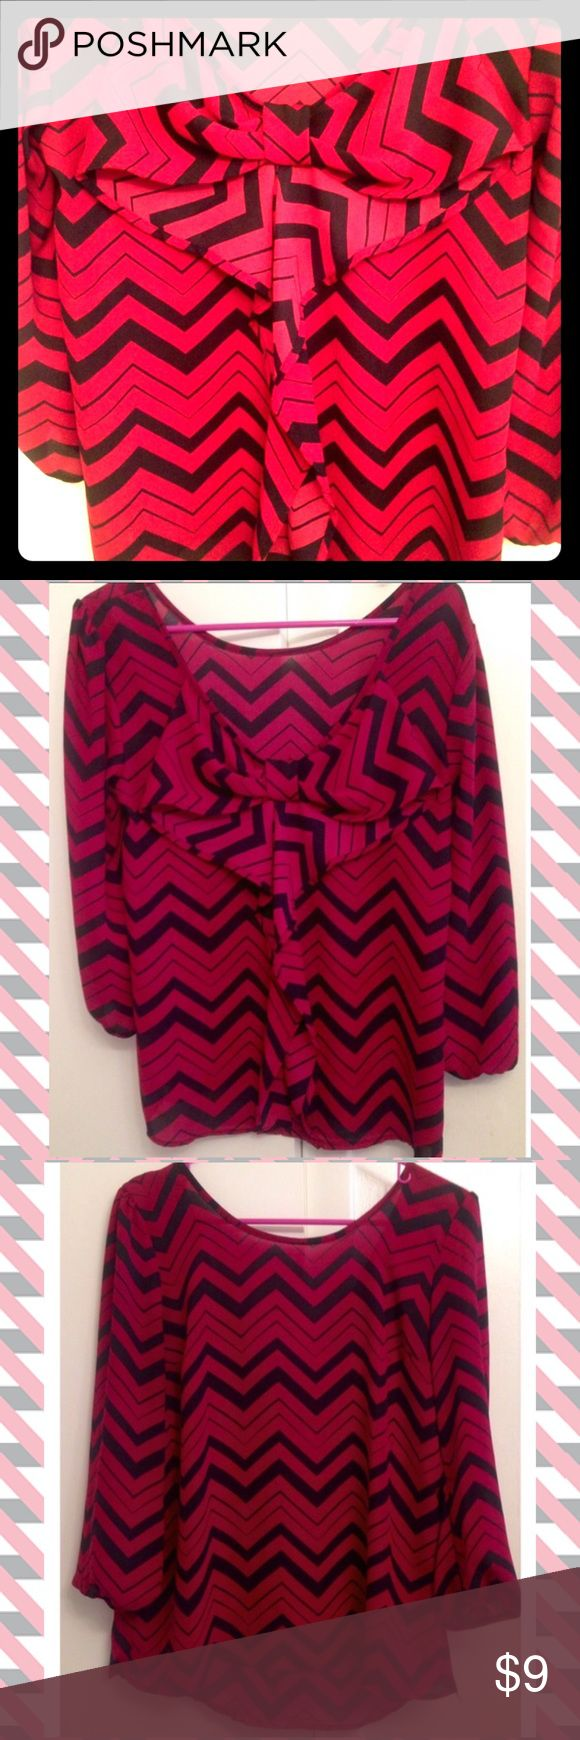 Hi-Lo Bow Back Chevron Top Hi-Lo Bow Back Chevron Top- Plunging Back. Very flattering. Like New! Charlotte Russe Tops Blouses